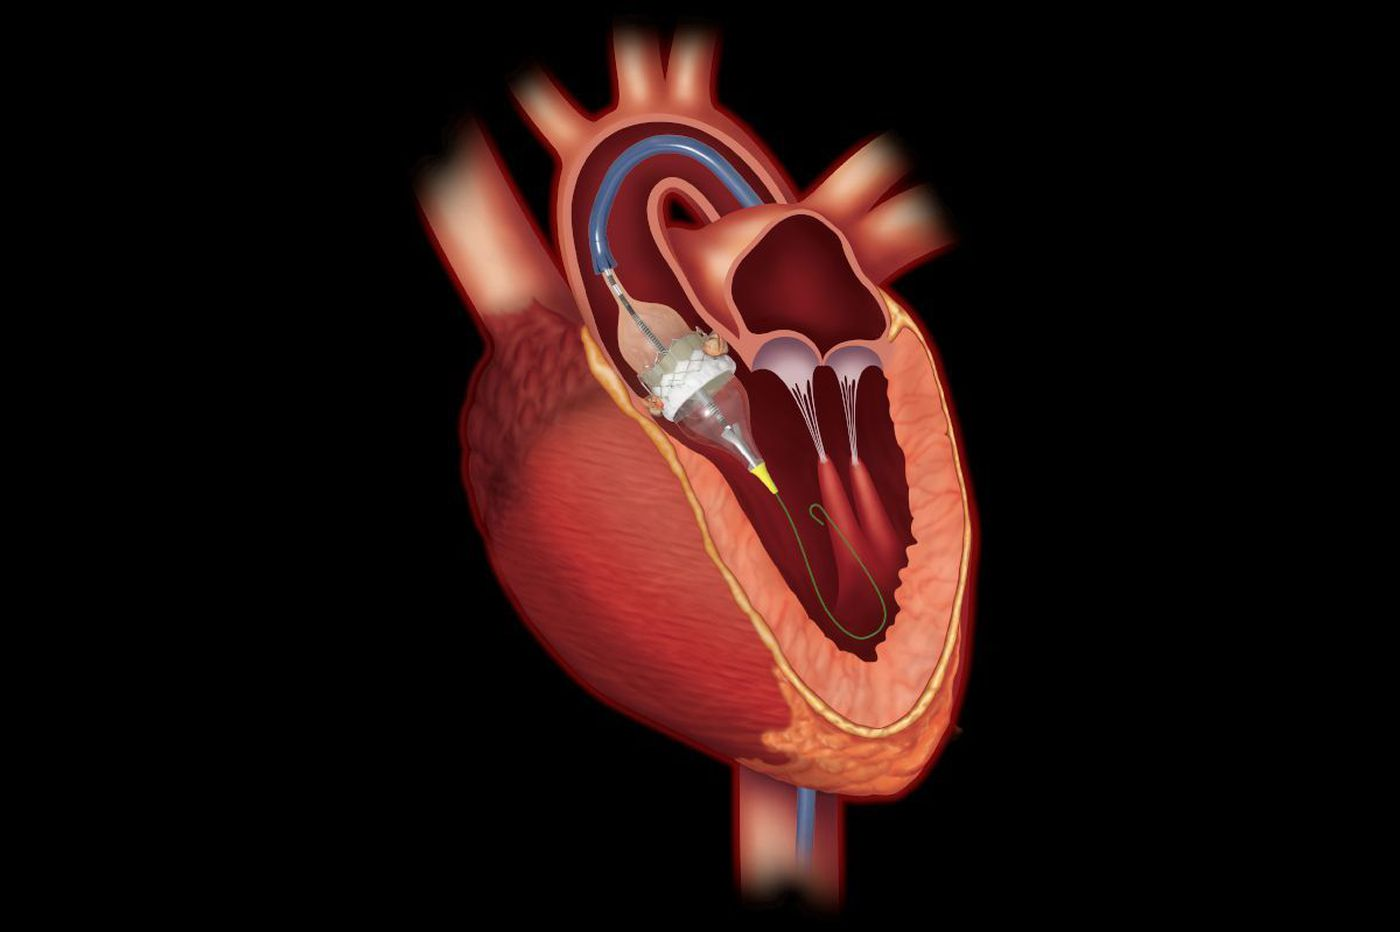 Using catheter to replace heart valve better than open-heart surgery, studies suggest